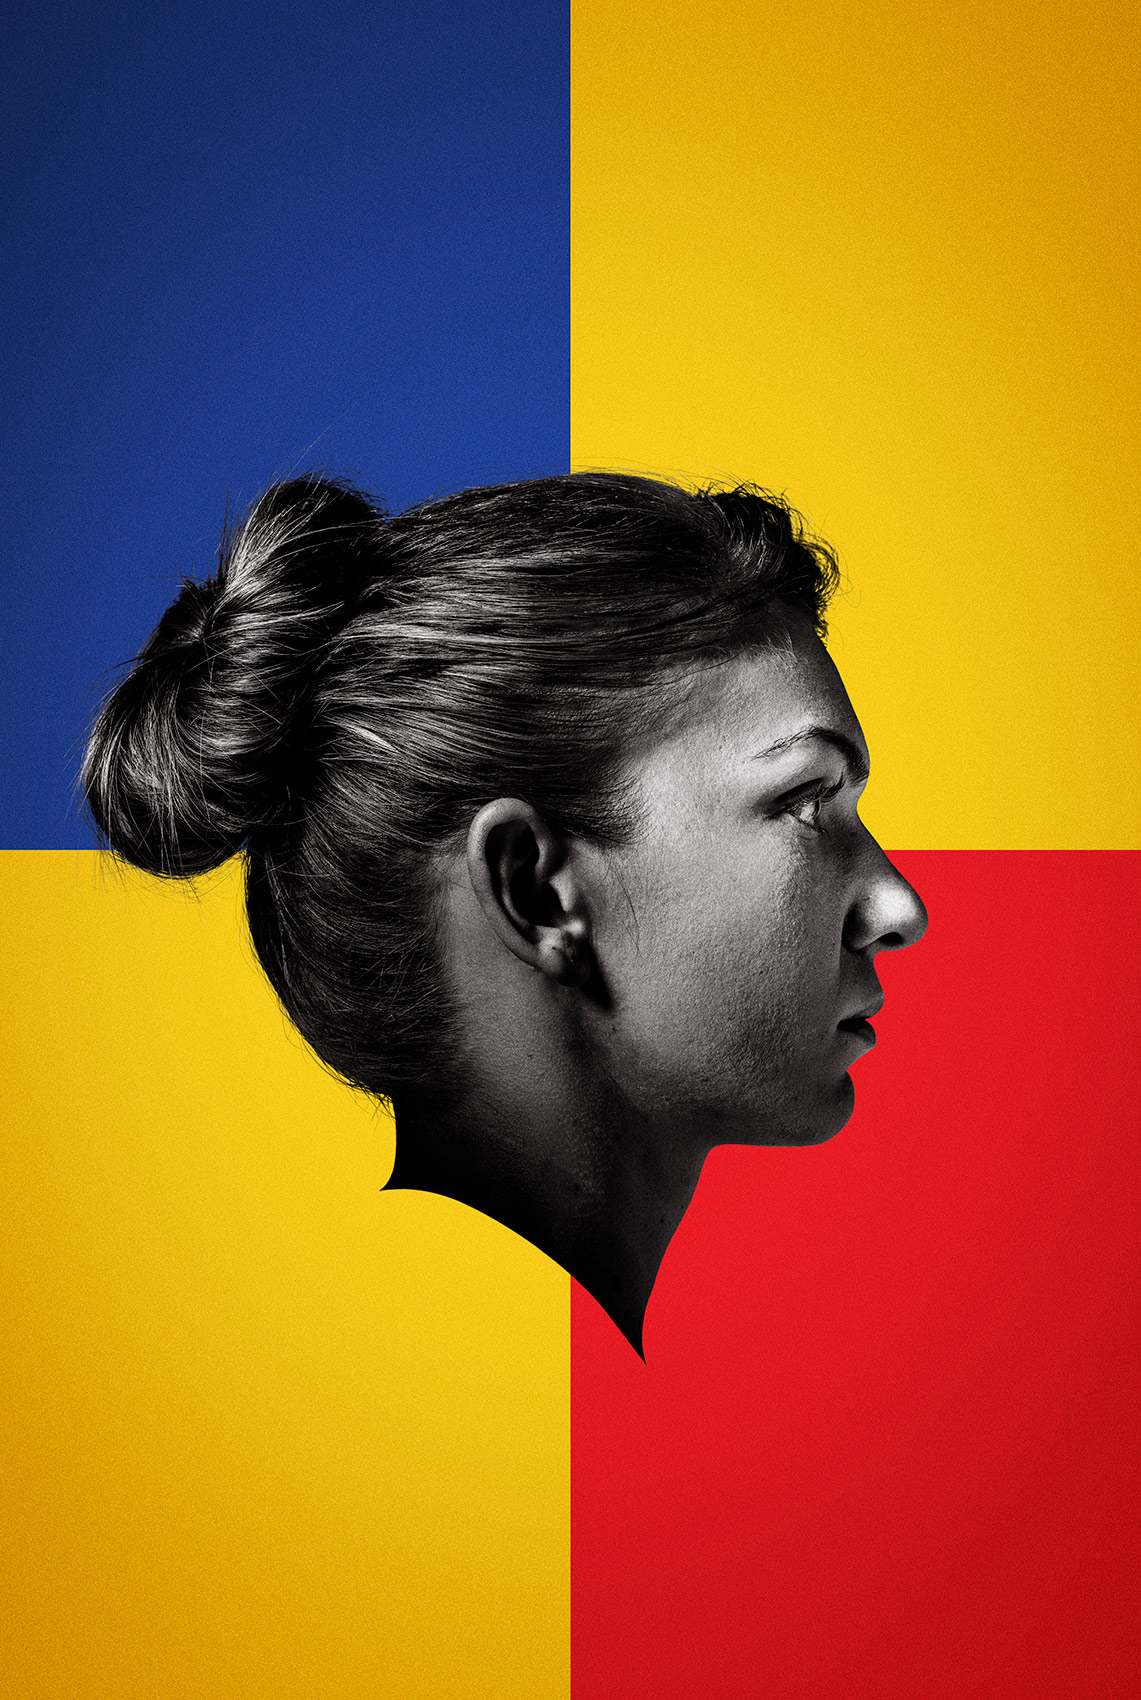 Adidas - Sport Icon Simona Halep / Agency: Fiction